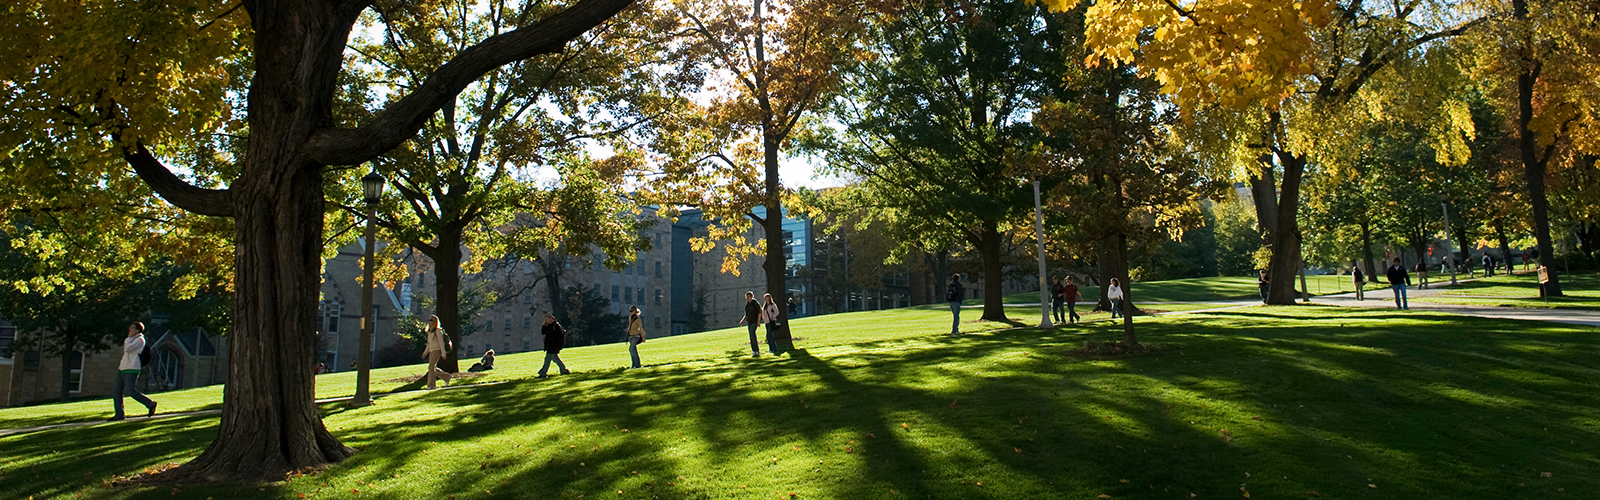 Pedestrians walk down Bascom Hill at the University of Wisconsin-Madison during a sunny autumn day